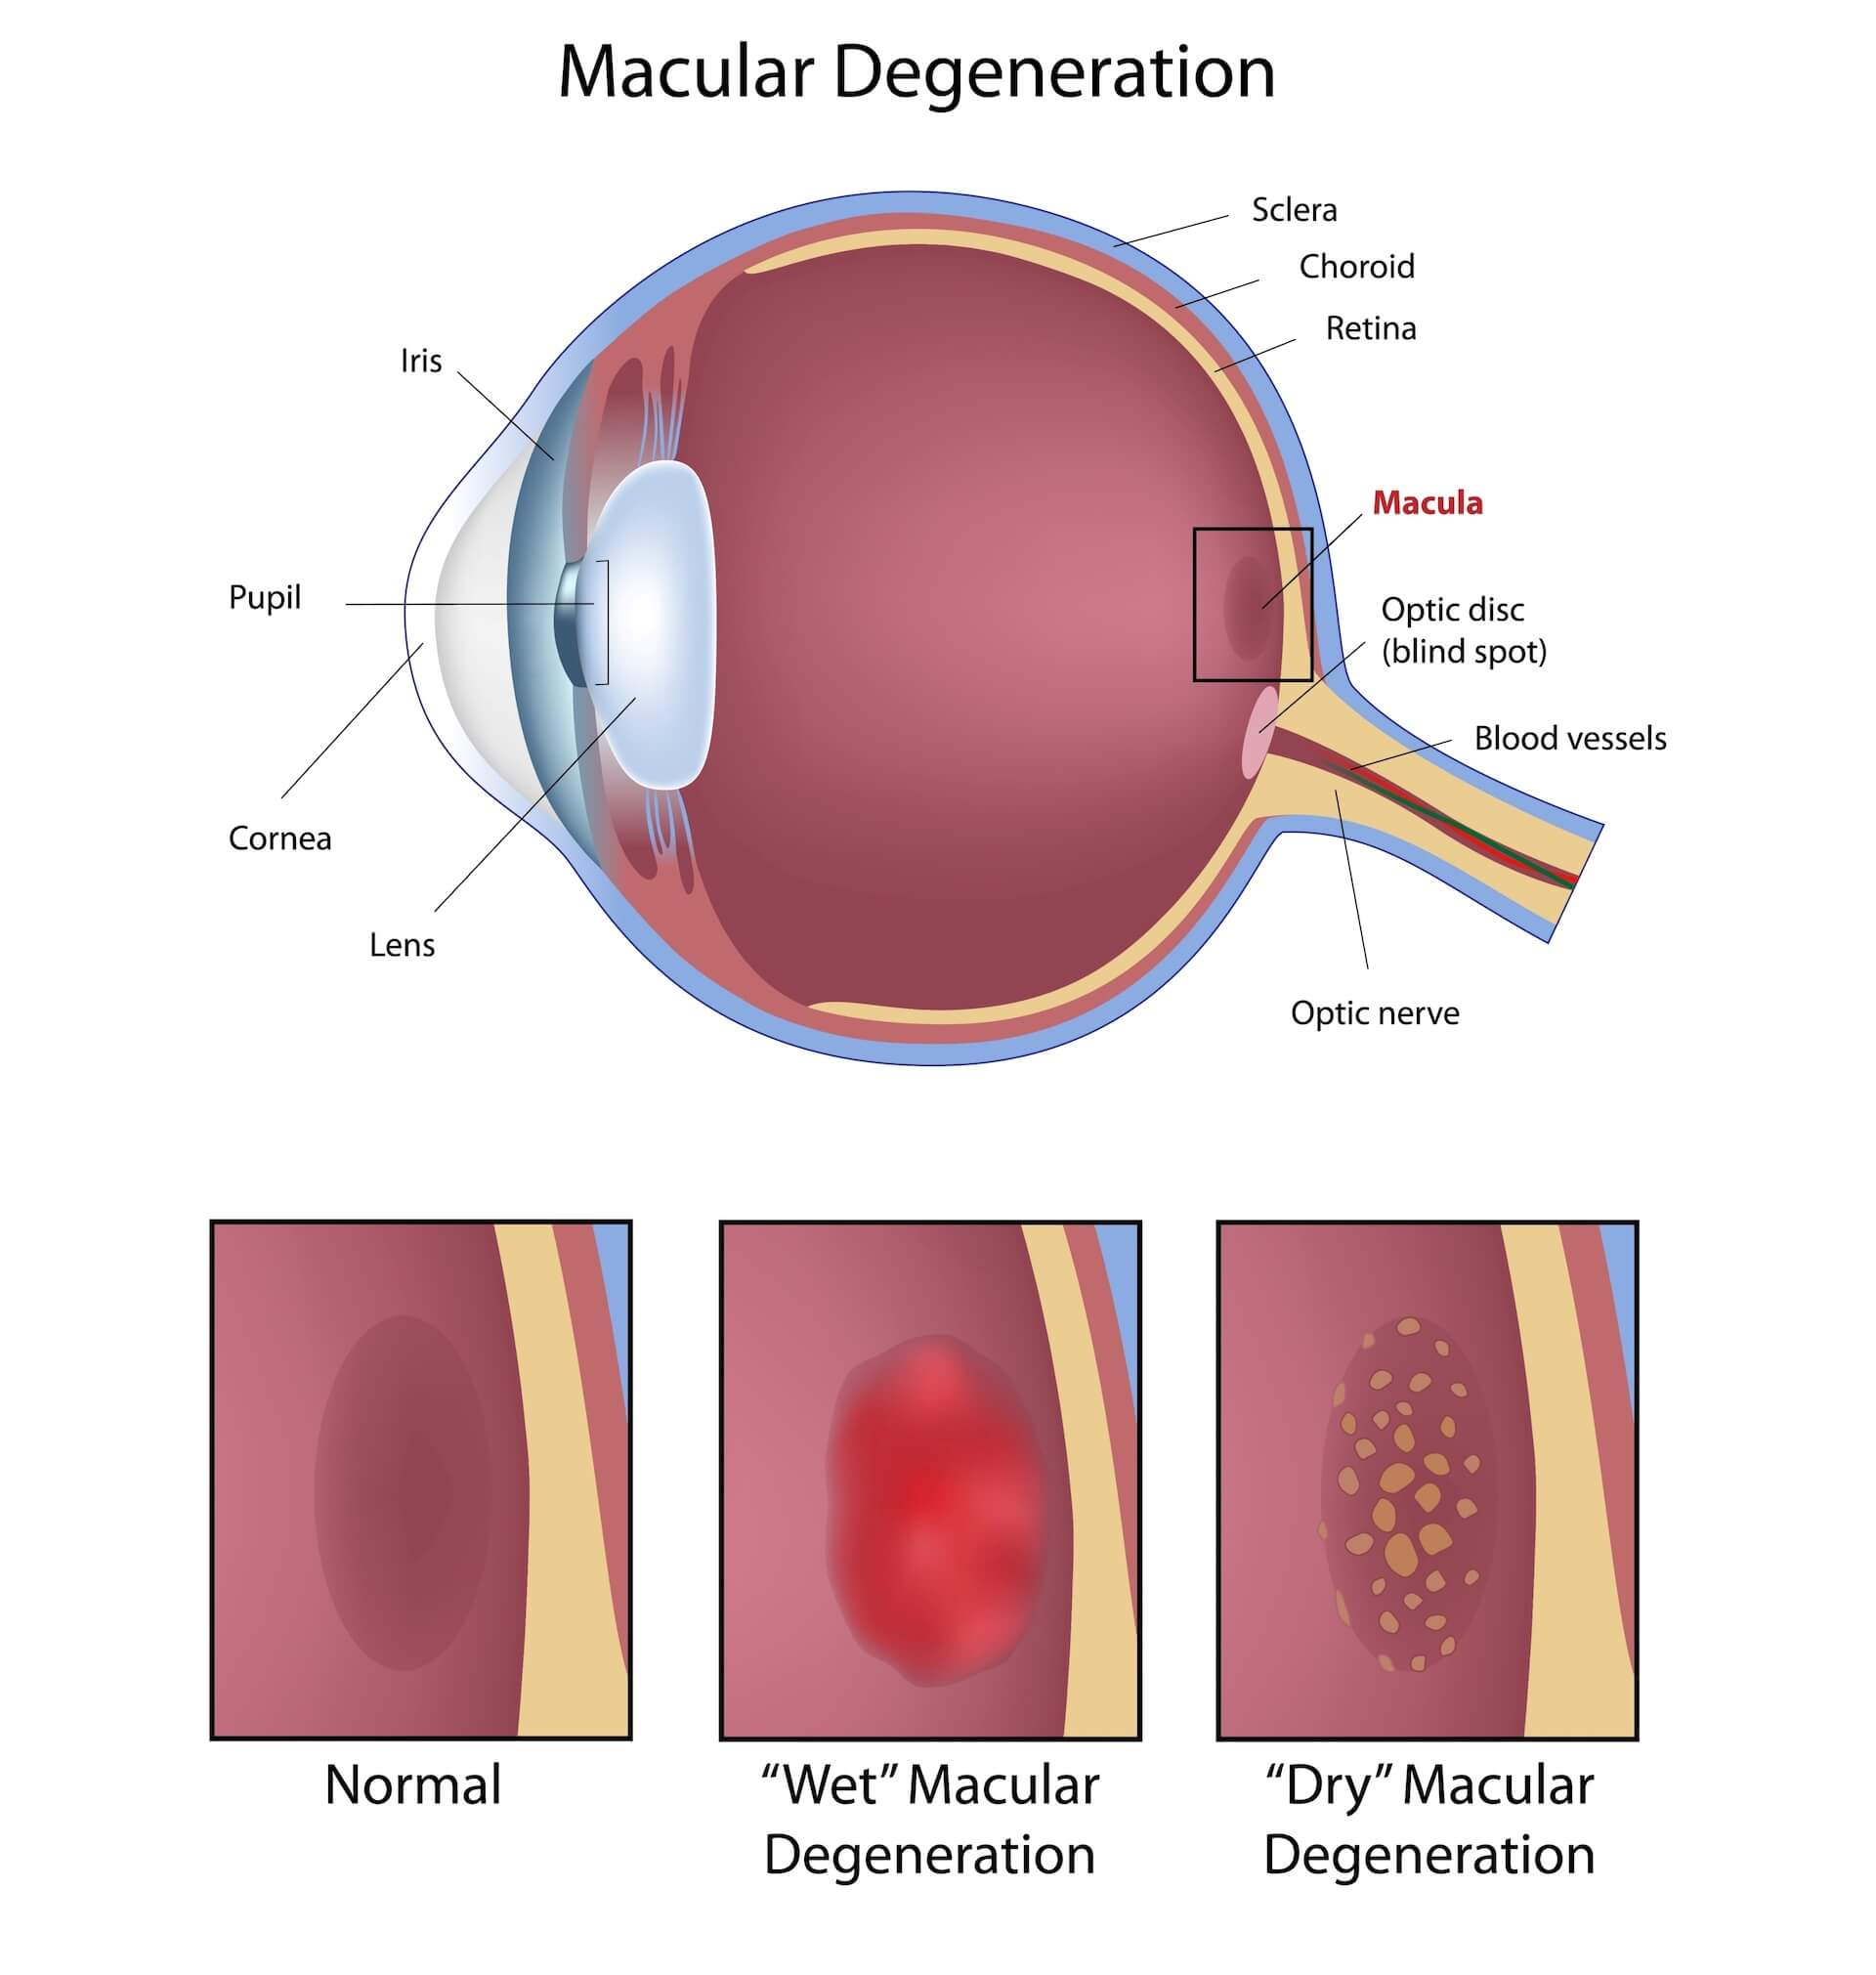 Diagram showing the effects of macular degeneration